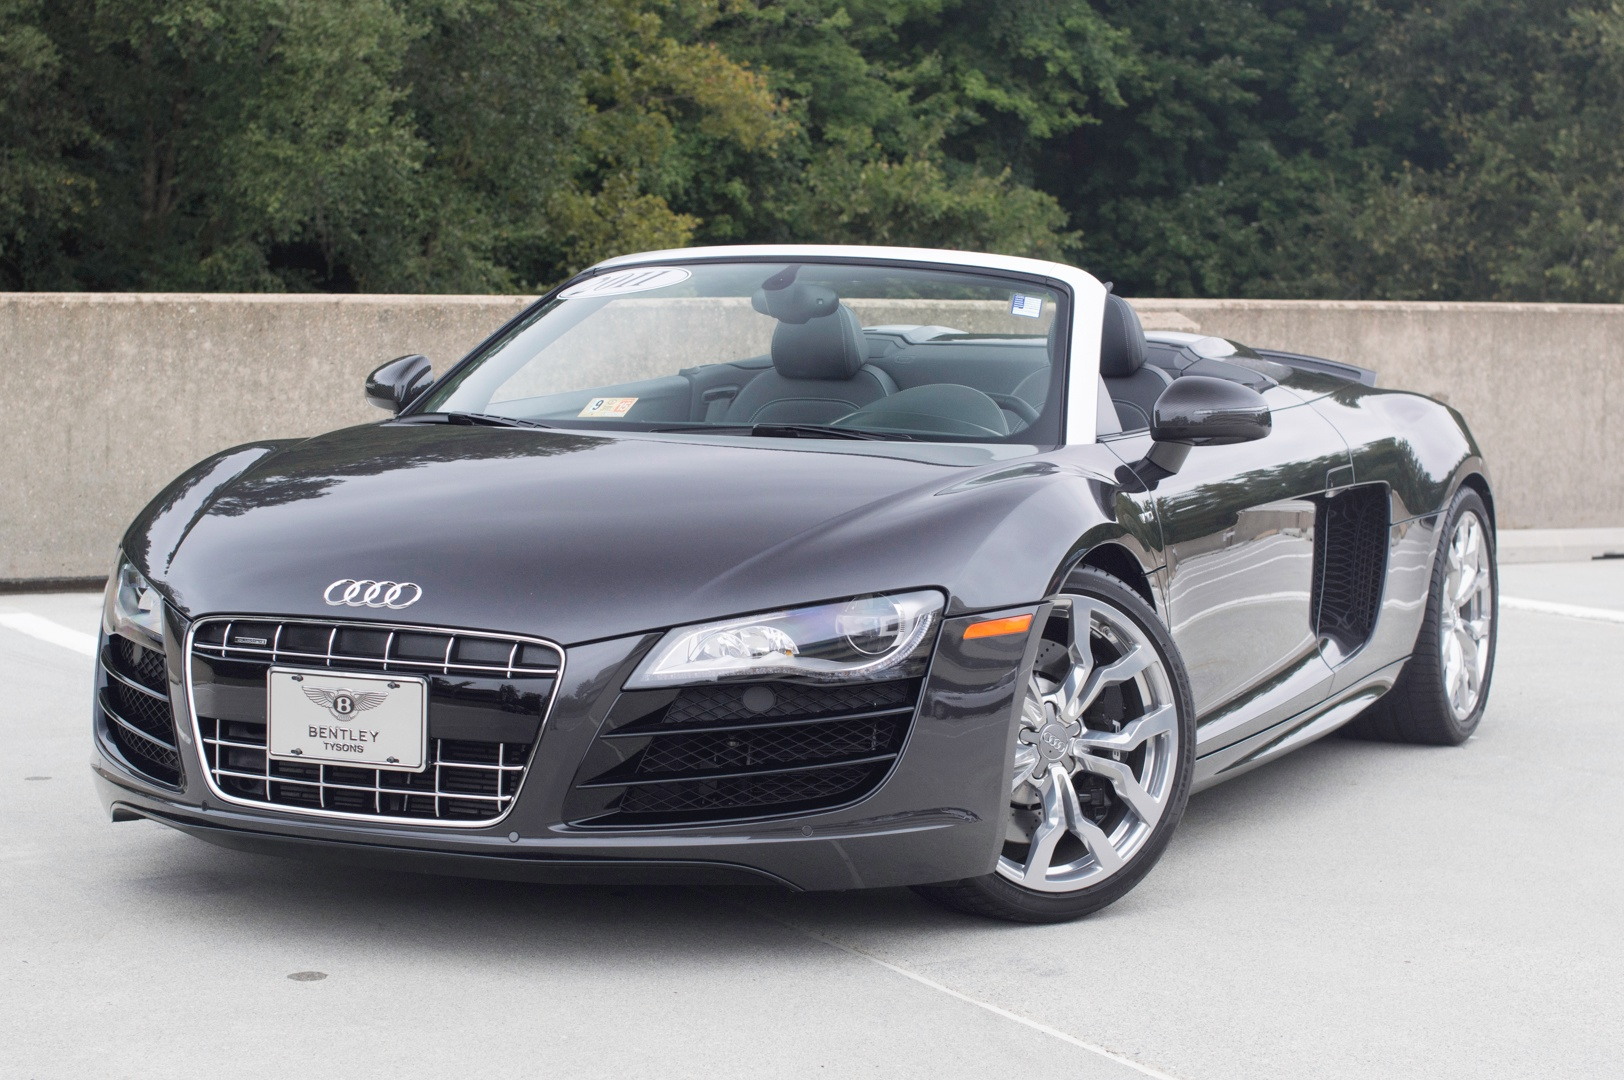 2011 Audi R8 5 2 Quattro Spyder Stock P002179 For Sale